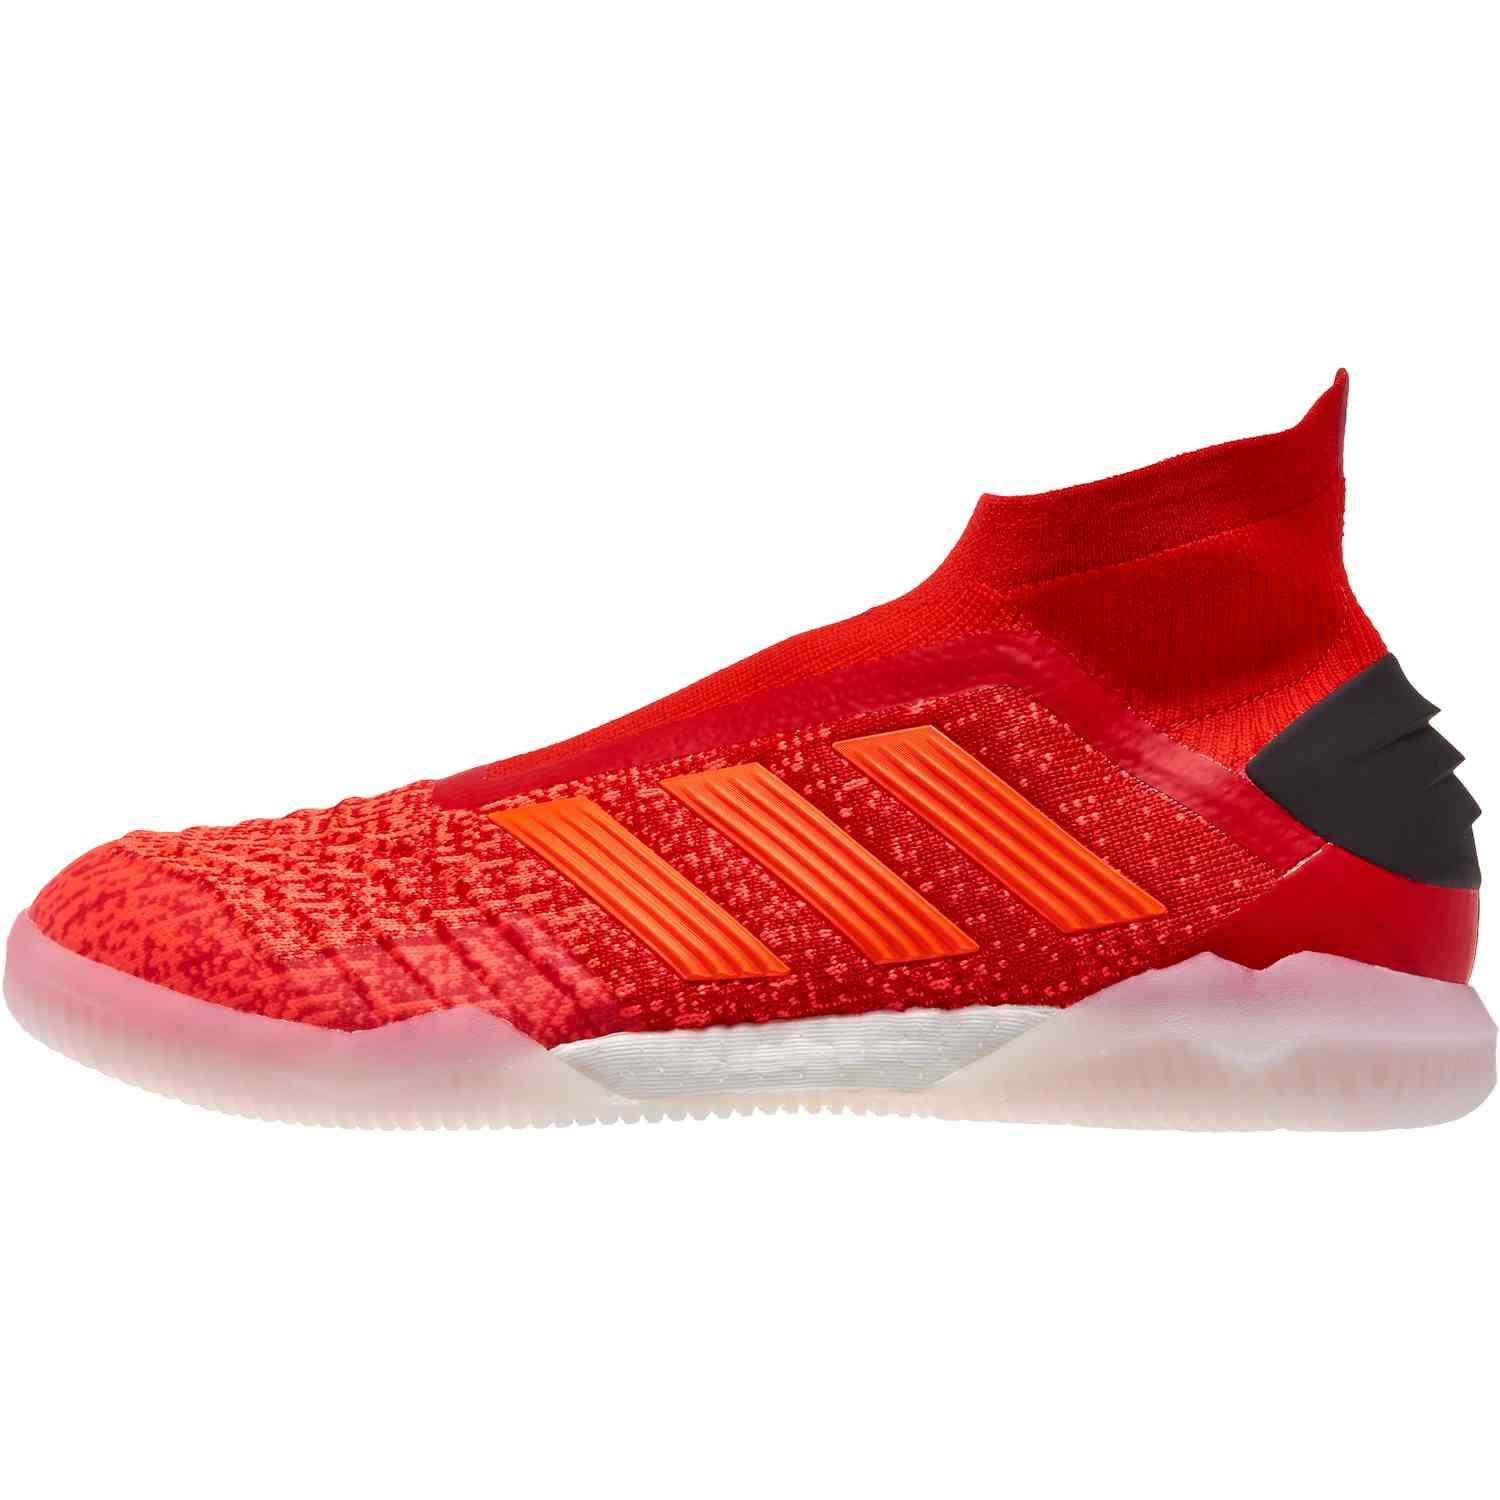 good official site san francisco adidas Predator Tango 19+ Indoor Soccer Shoes - Initiator Pack - Soccer  Master